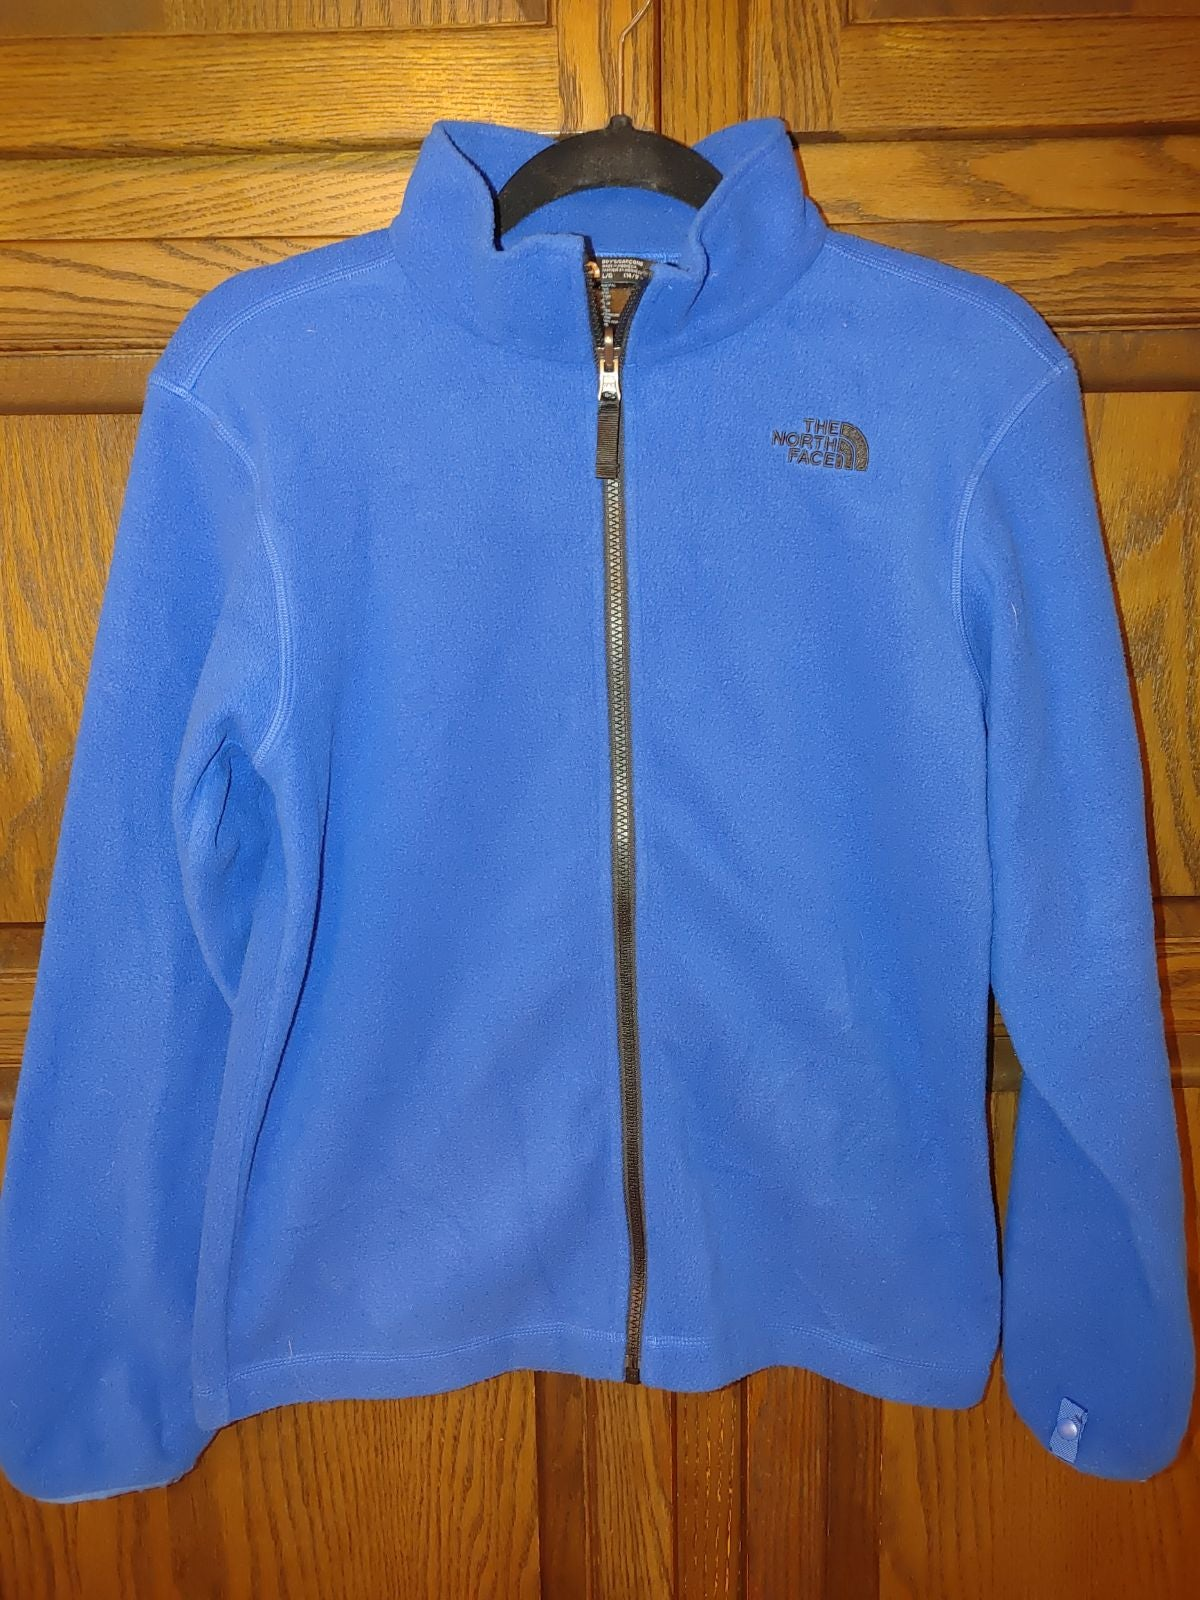 The North Face fleece, boy's large